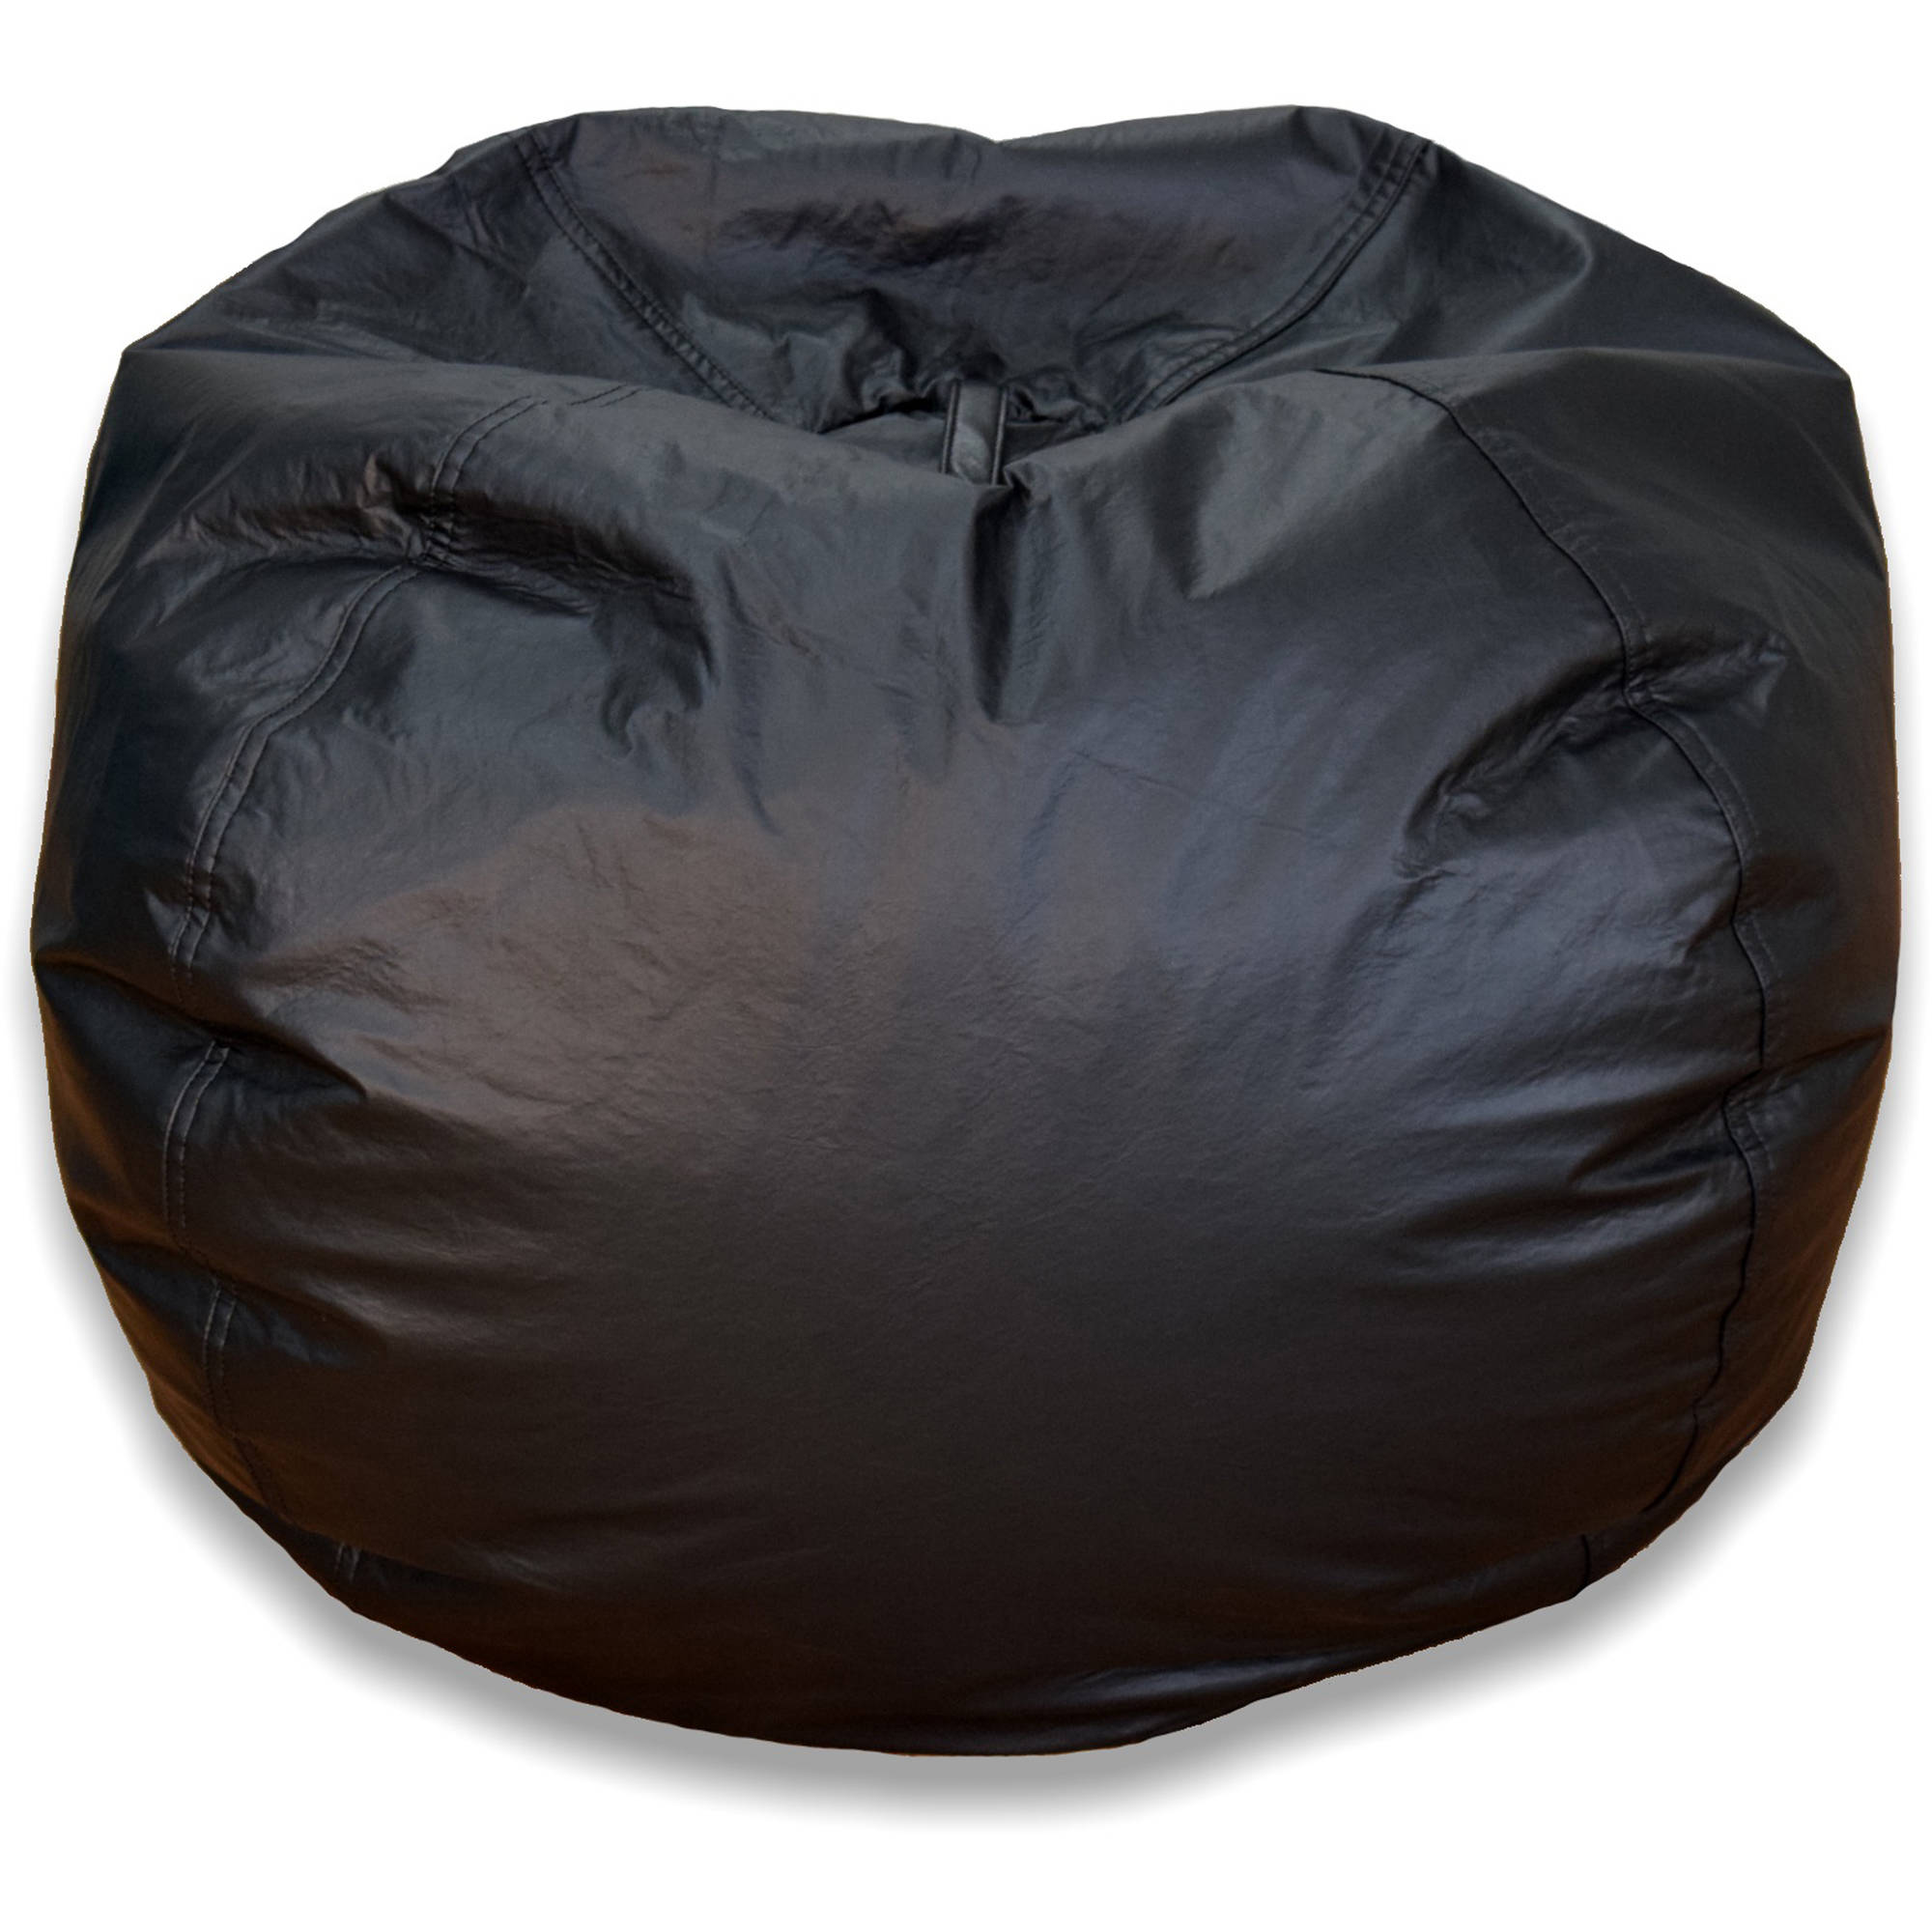 Jumbo Bean Bag Multiple Colors Walmartcom